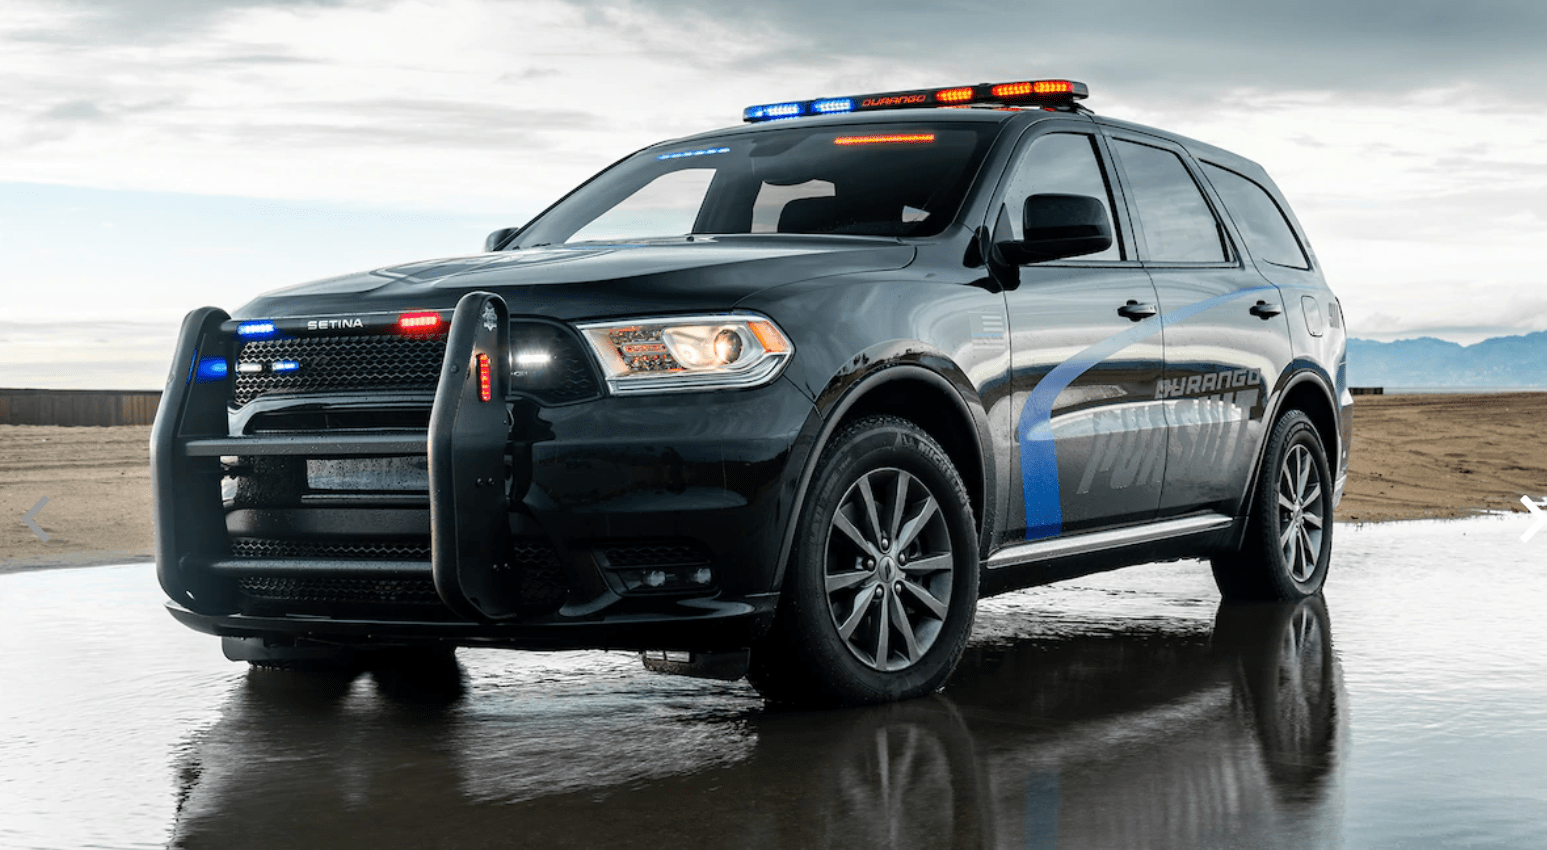 2019 Dodge Durango Pursuit SUV Testing - Law Officer